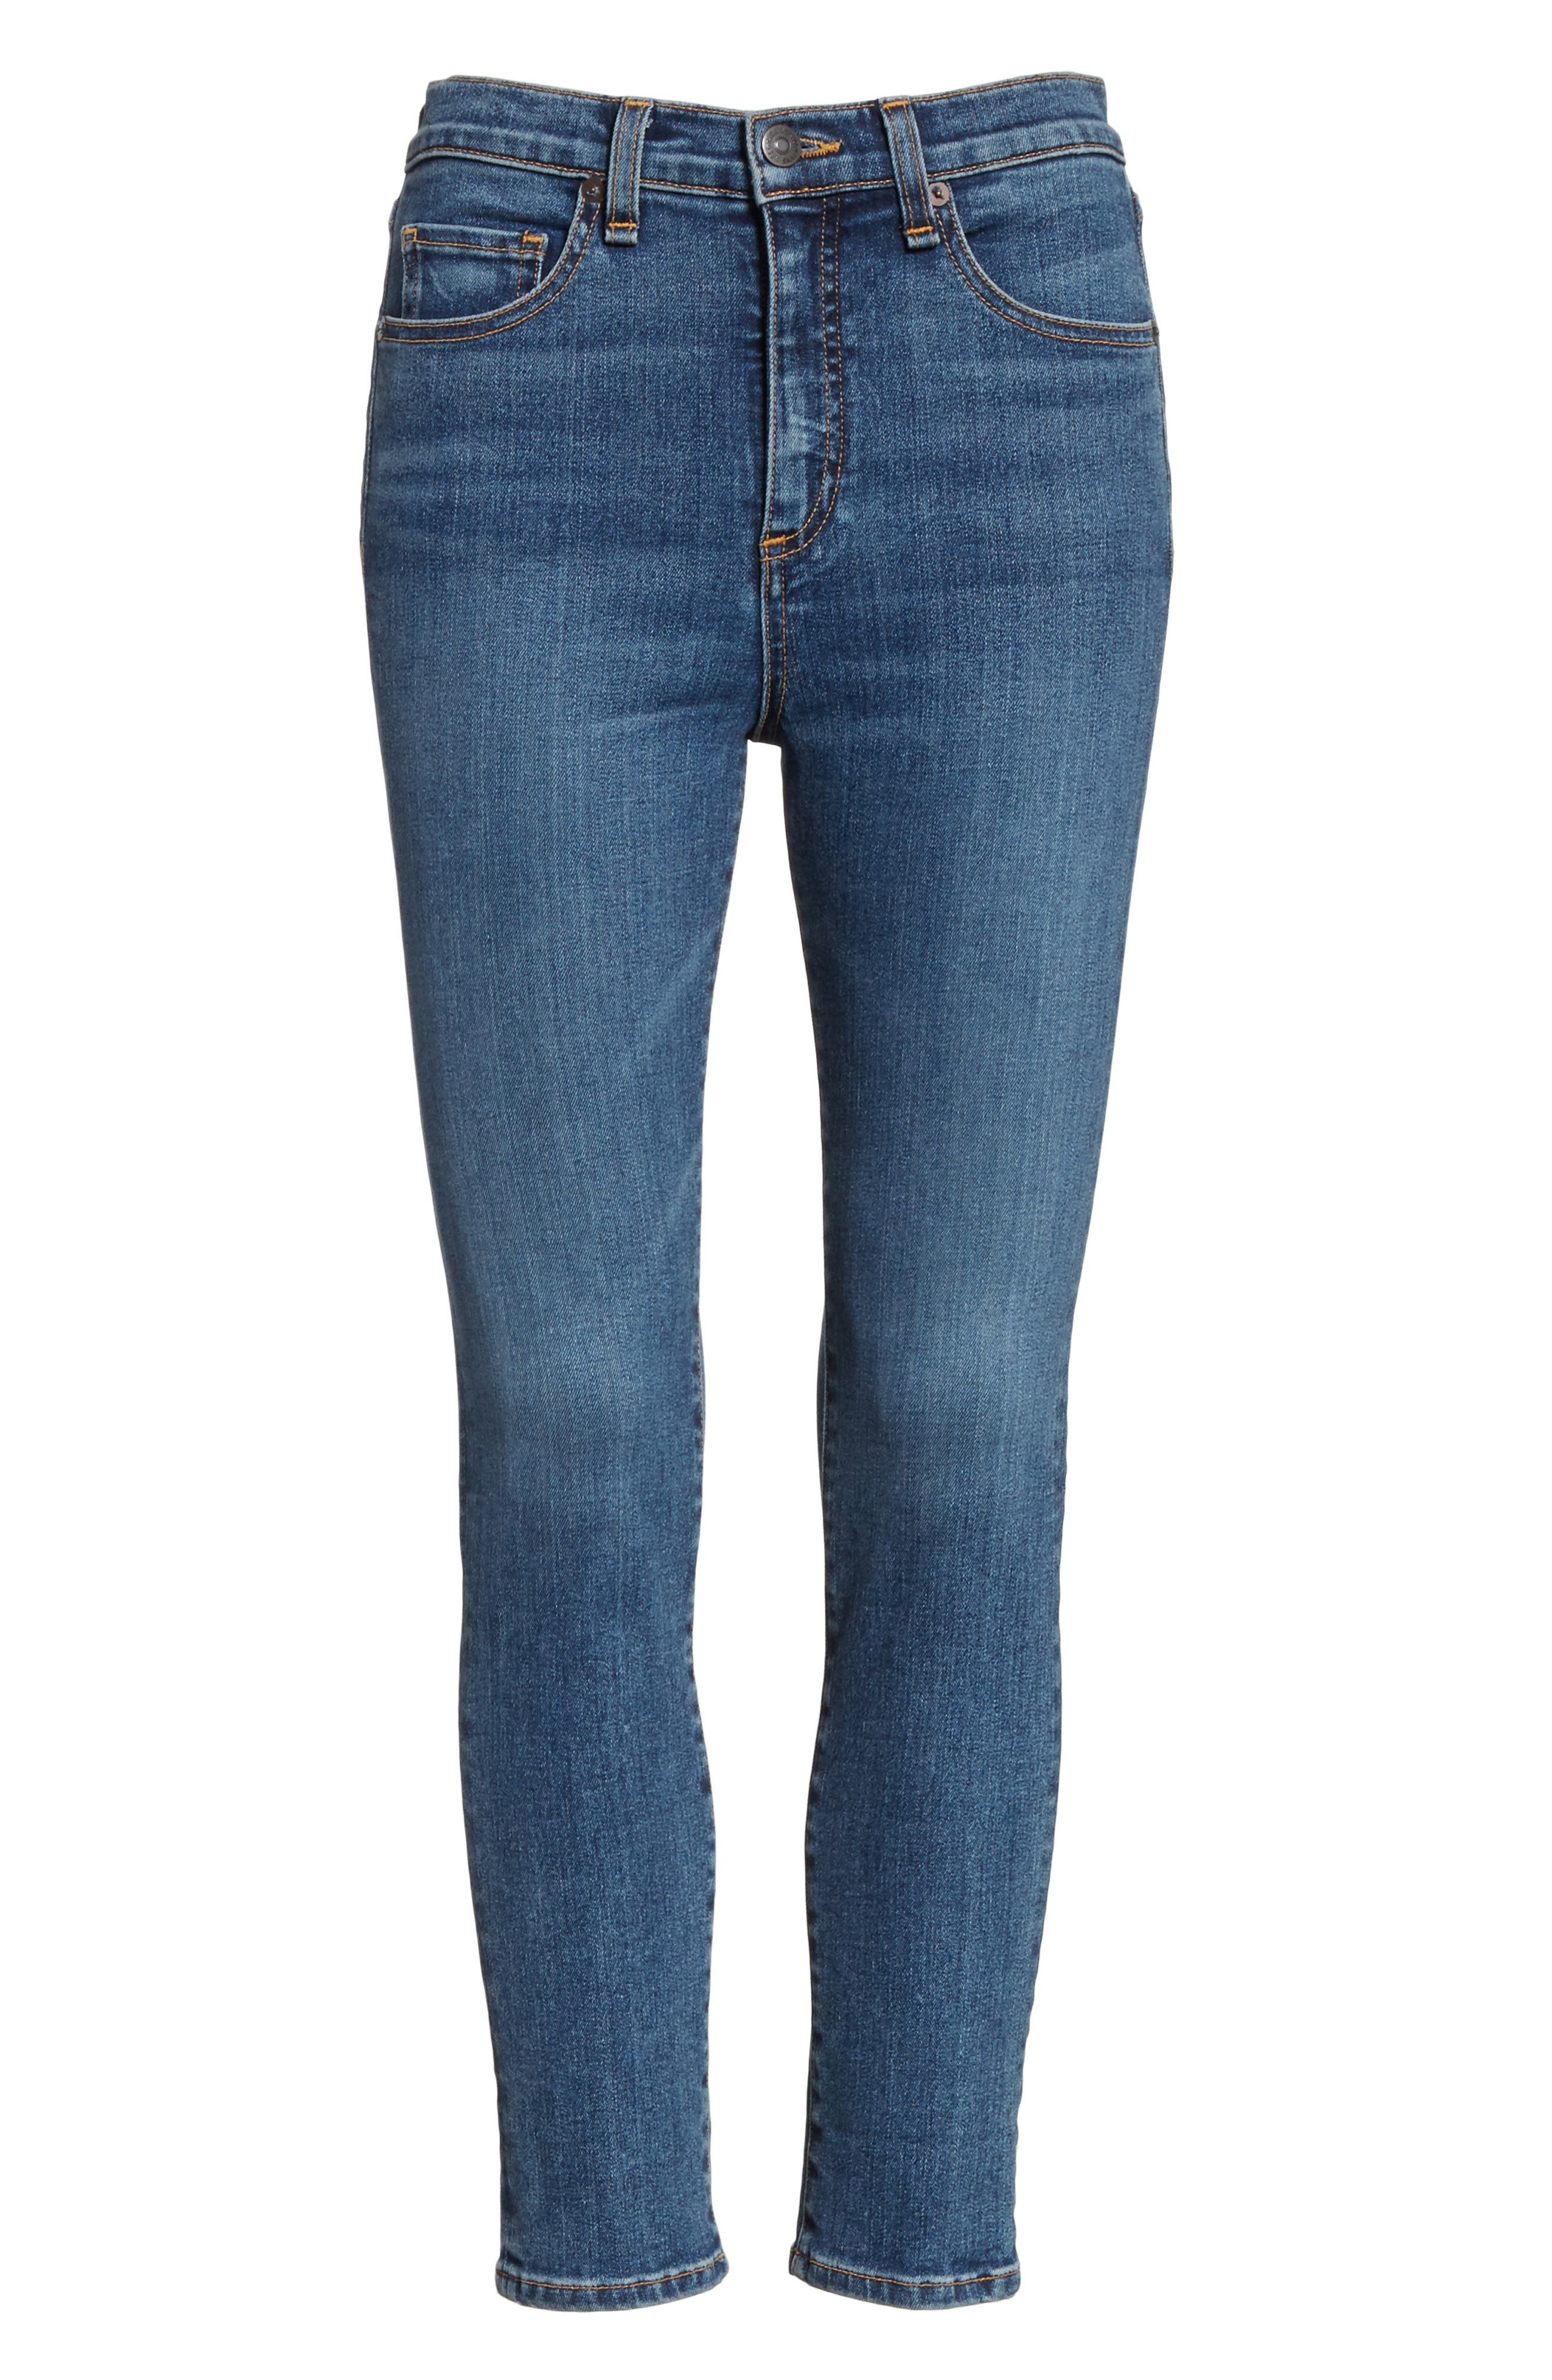 Kate Crop Skinny Jeans,                             Alternate thumbnail 6, color,                             Classic Wash